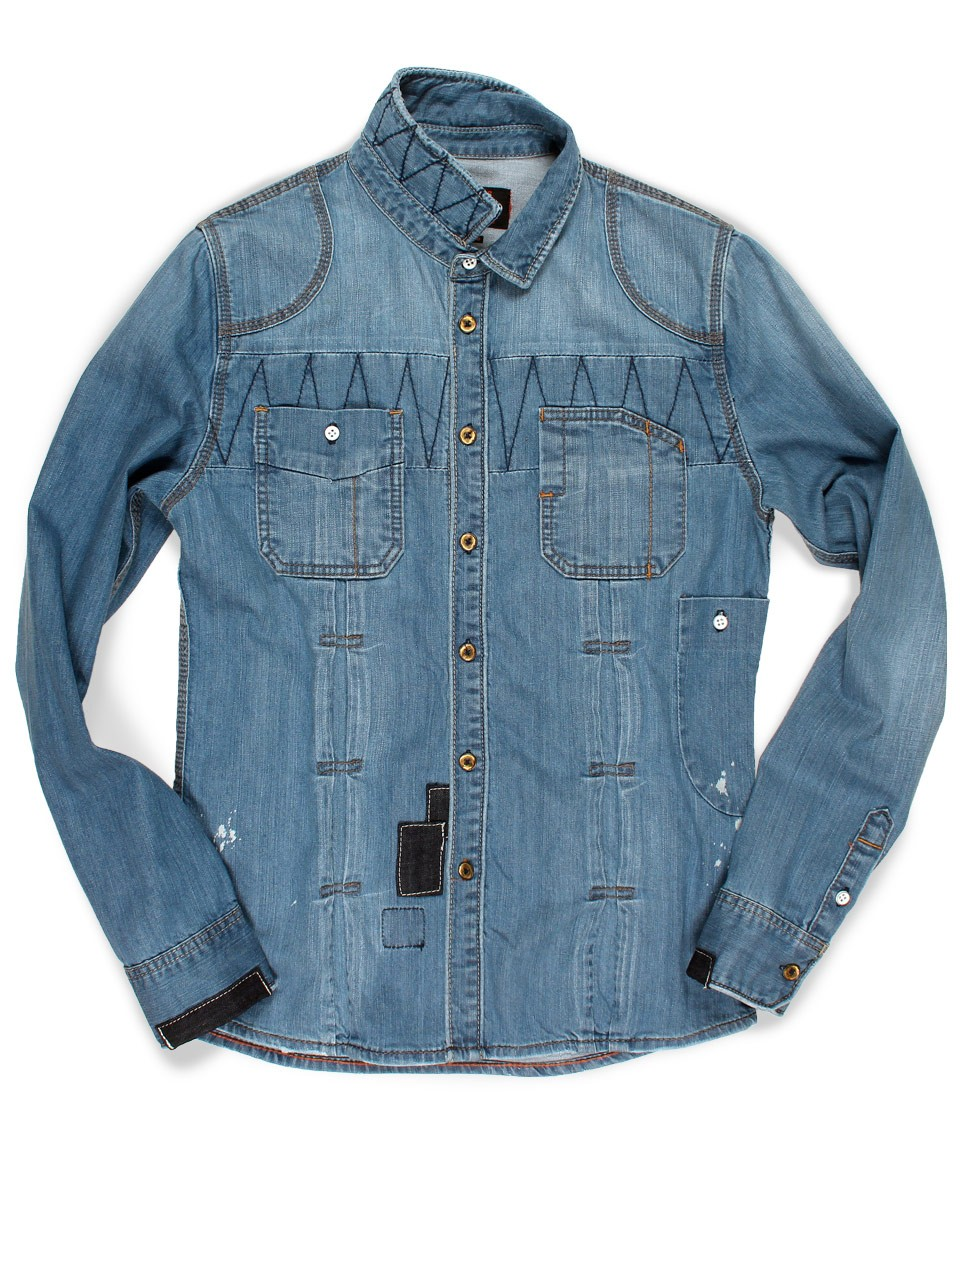 Lt Destroyed Denim Shirt